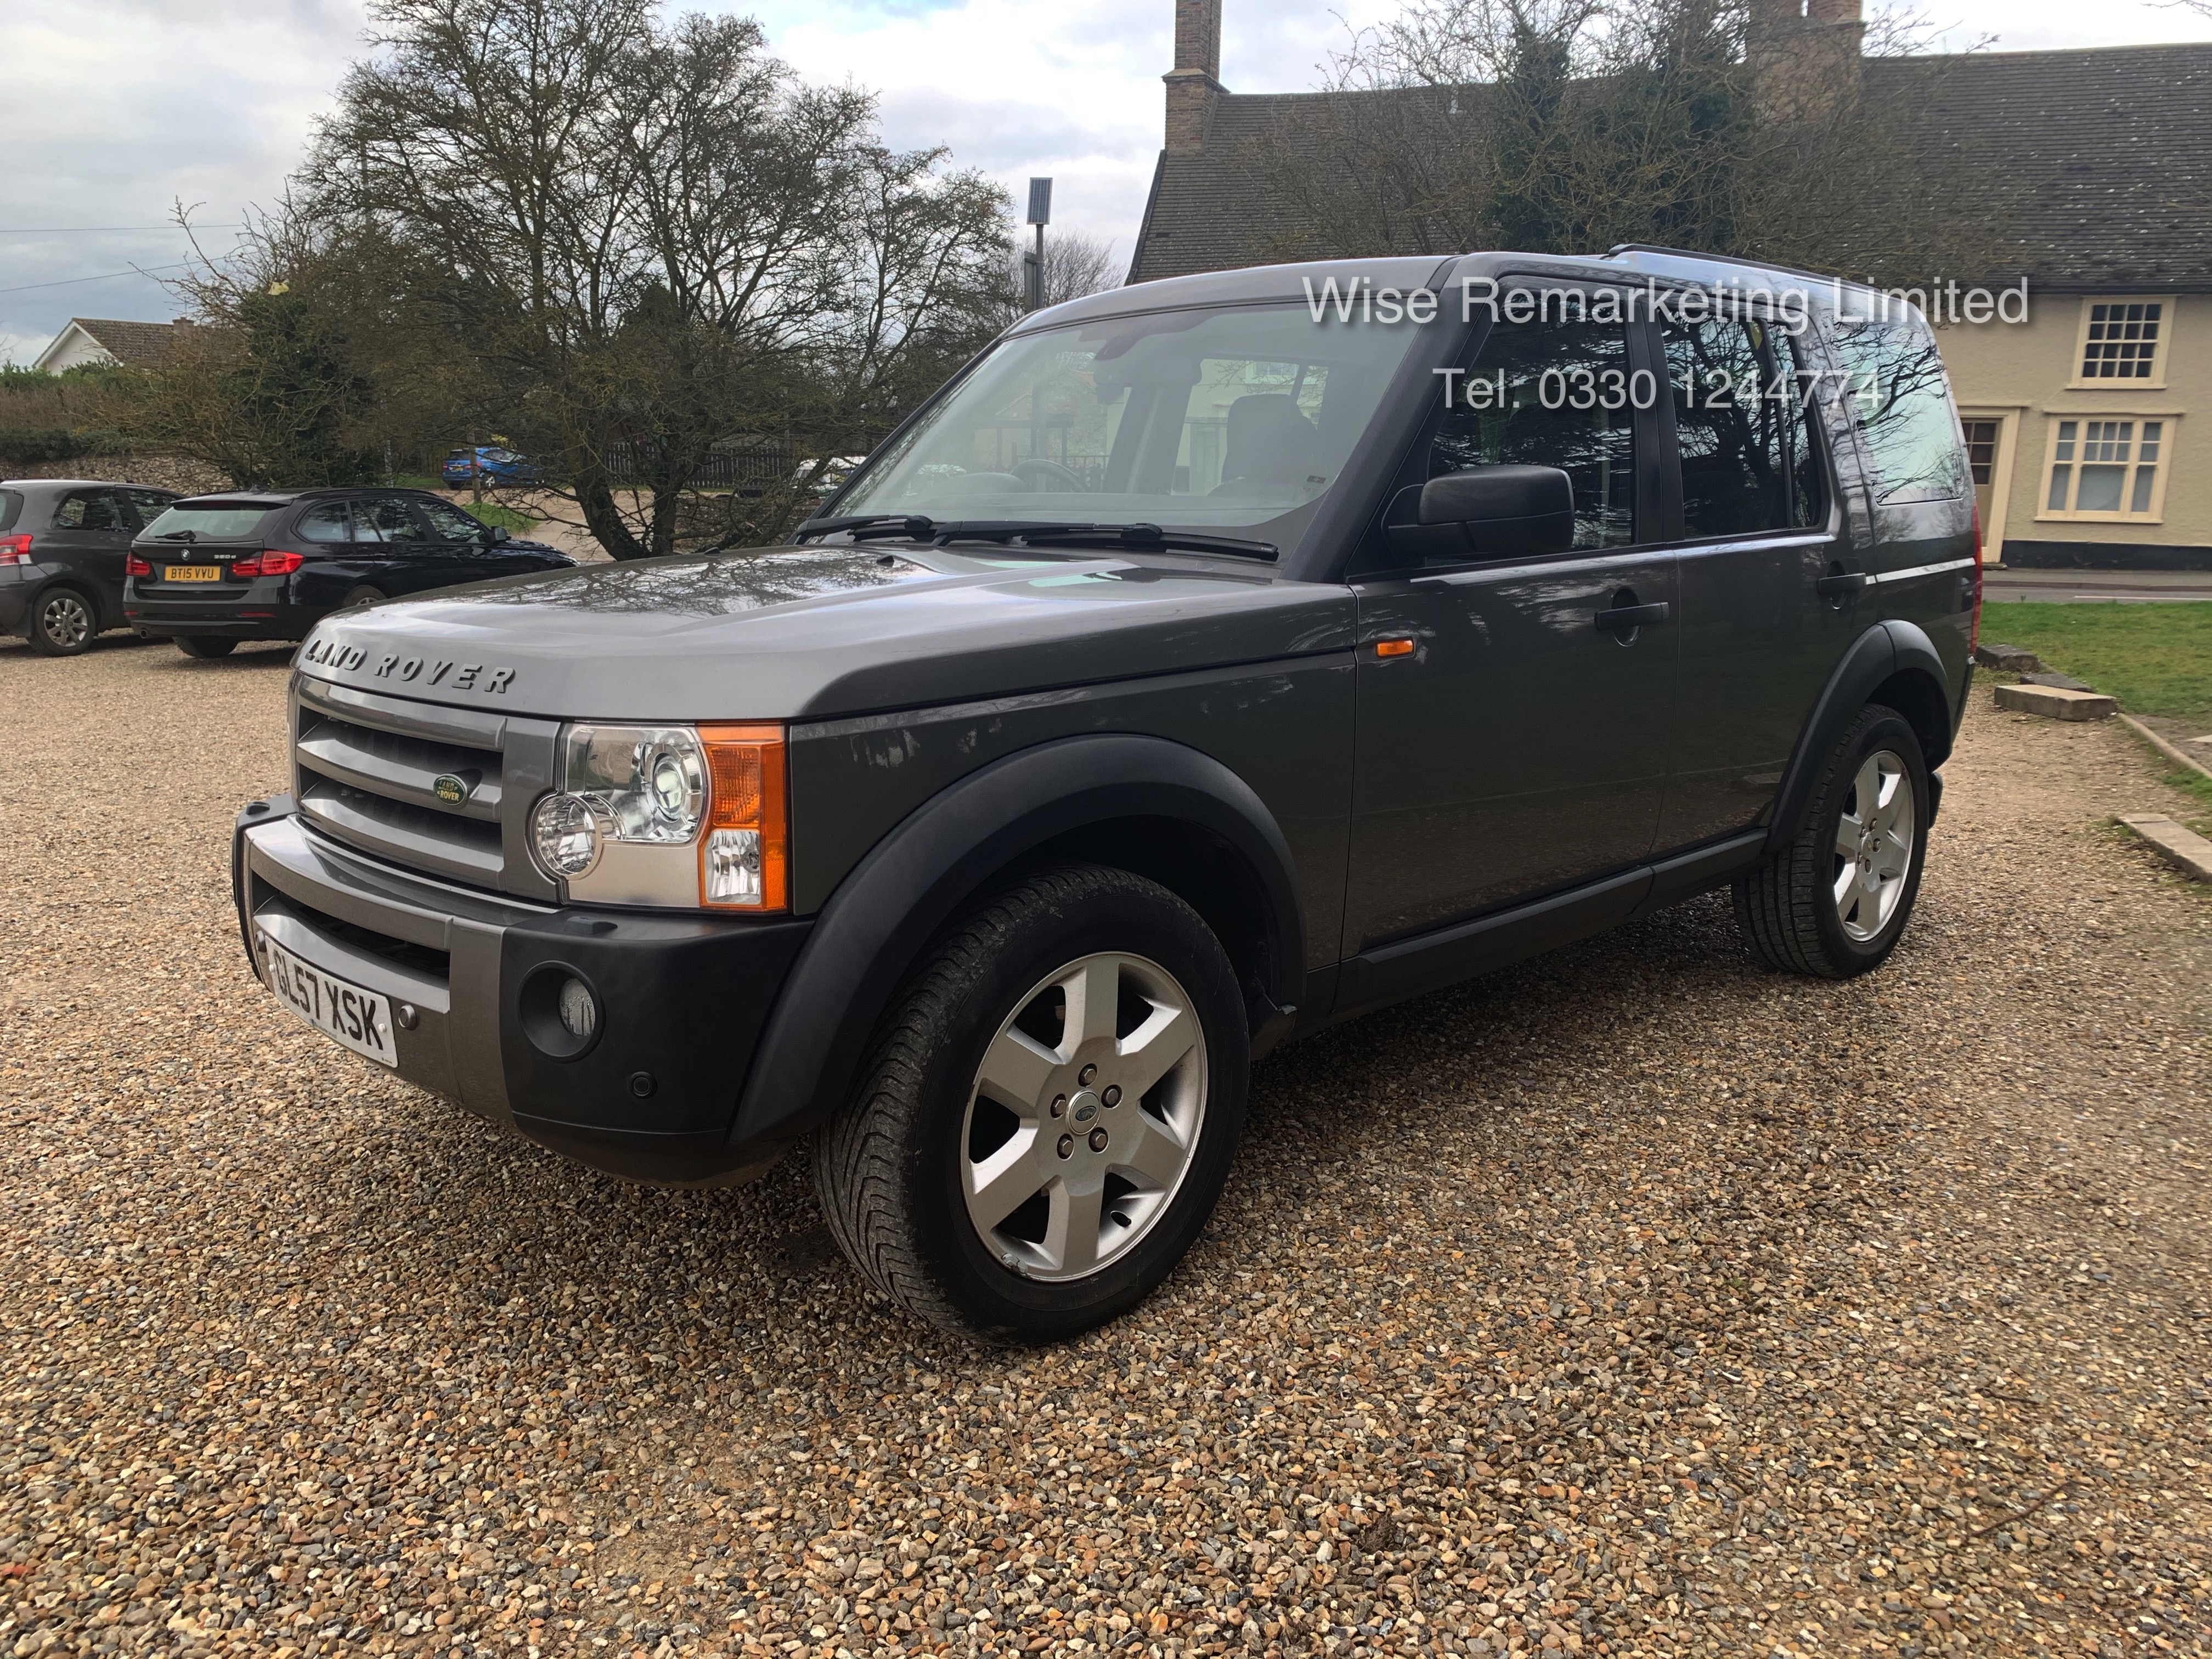 Land Rover Discovery 2.7 TDV6 HSE - Automatic - 2008 Reg - Full Leather - 7 Seater - Sat Nav -